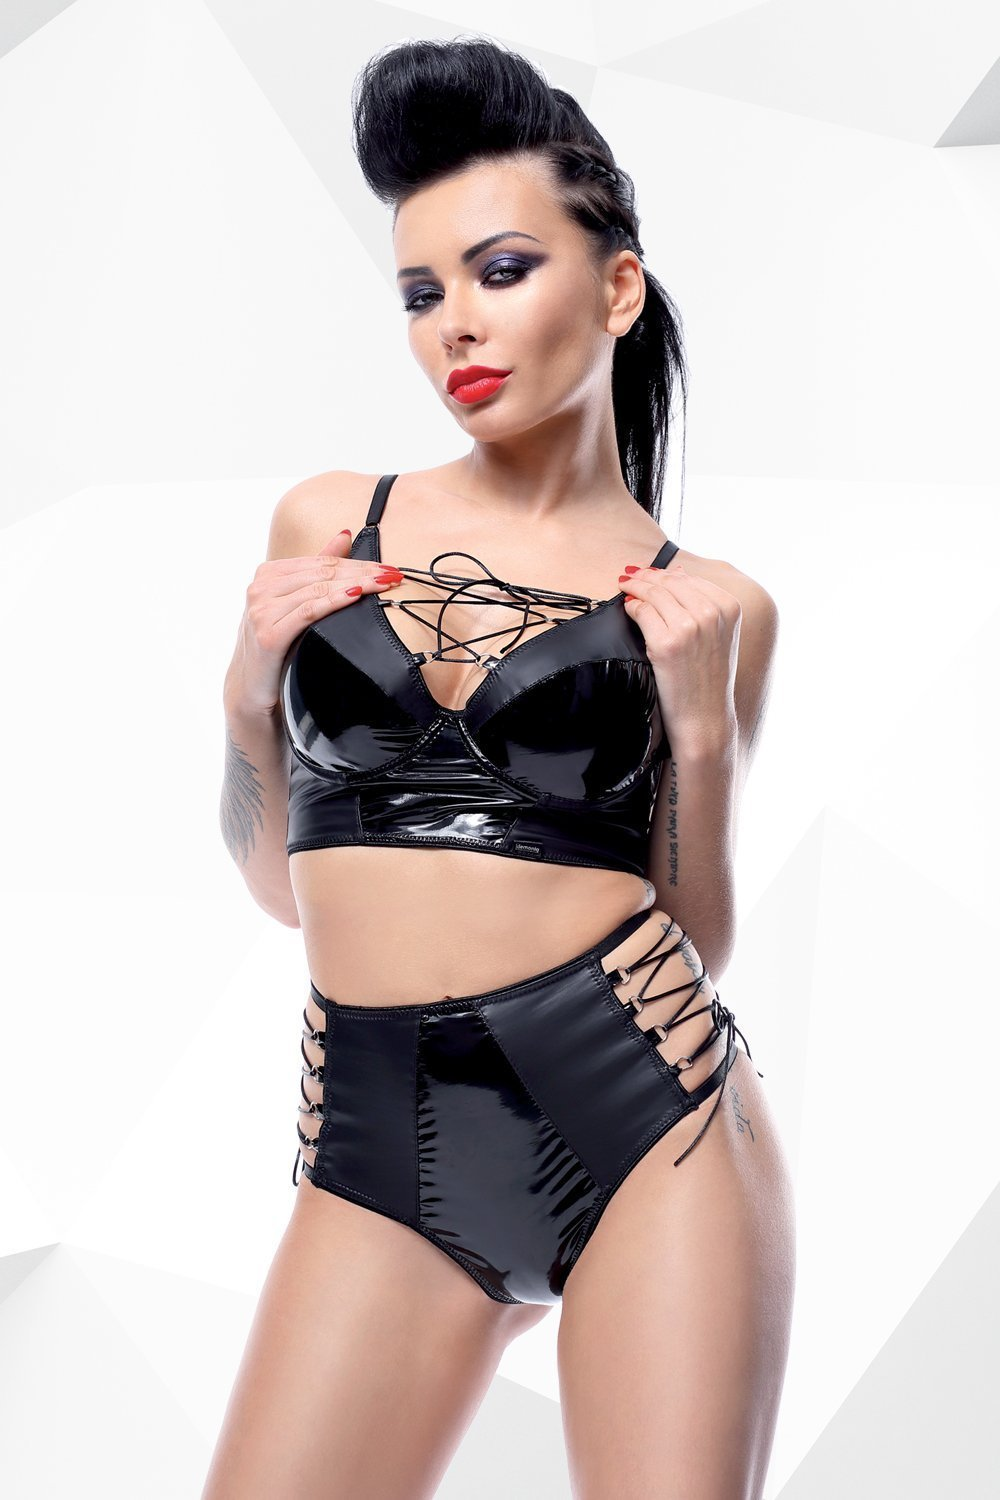 demoniq Lingerie Set UK 8 / Black Jessica by Demoniq Hard Candy Collection